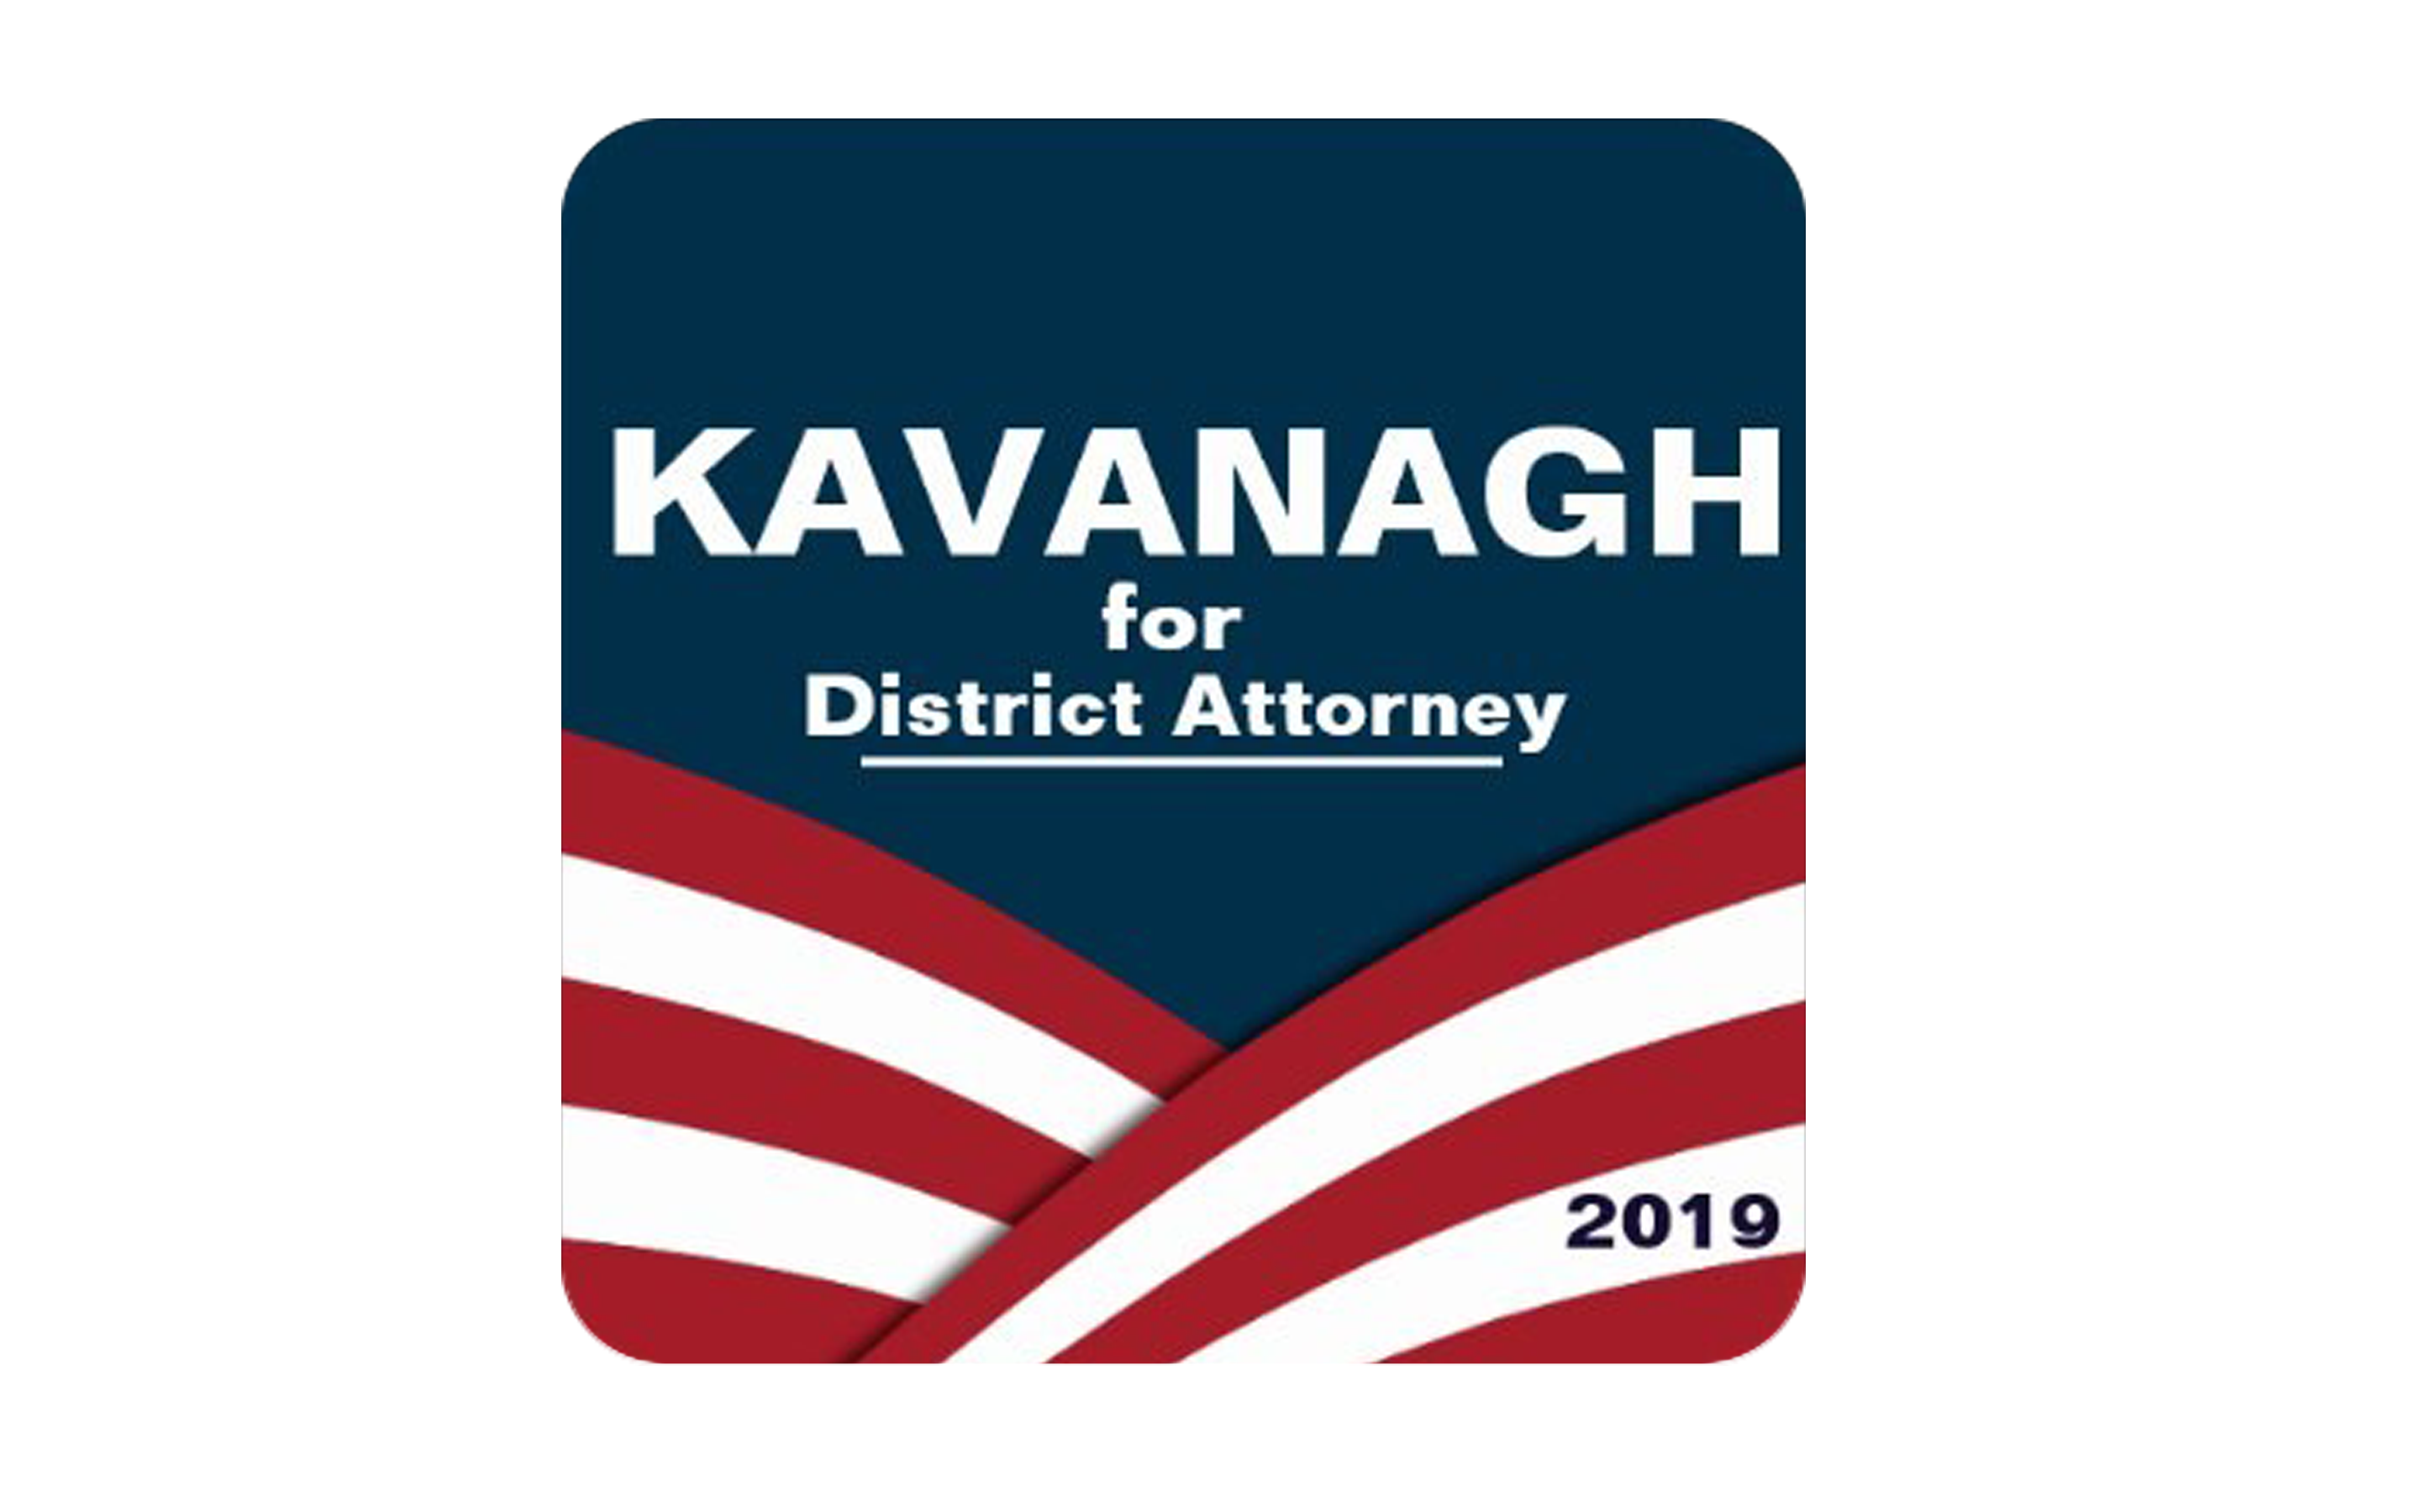 Kavanaugh for District Attorney